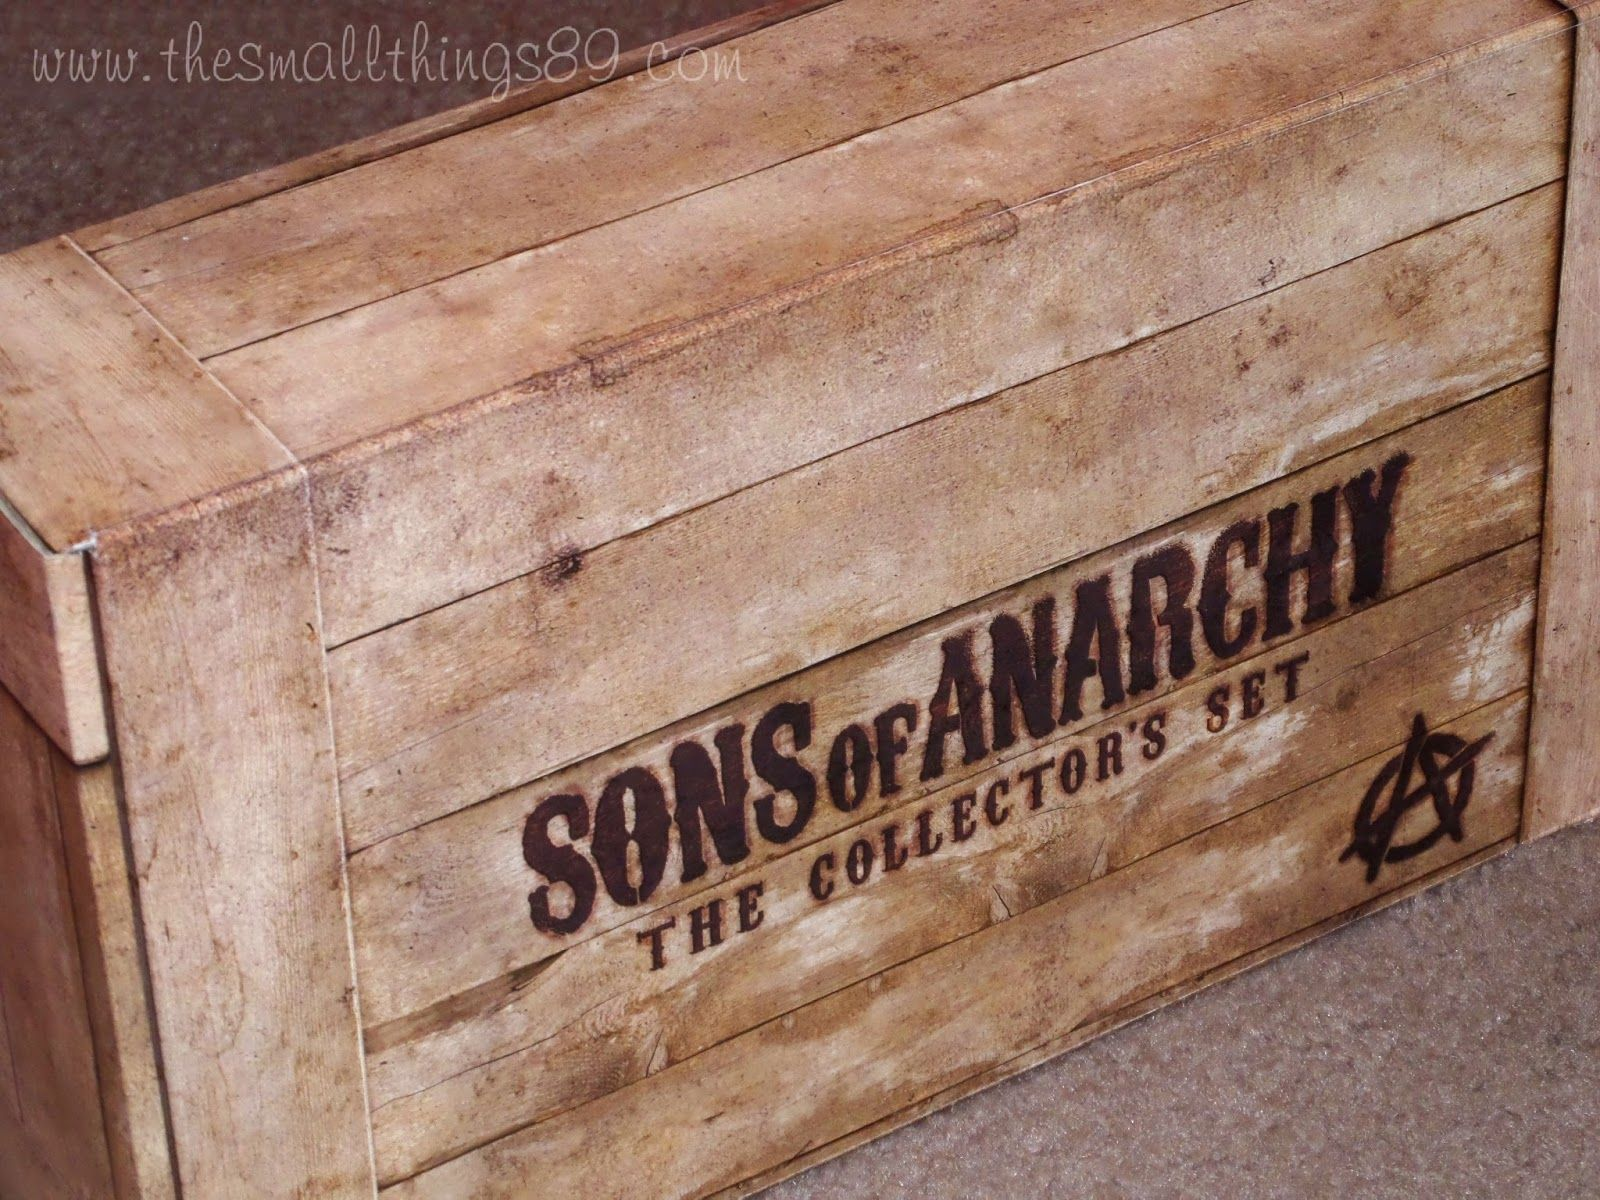 Sons Of Anarchy The Collectors Set On Blu Ray Sons Of Anarchy Anarchy Blu